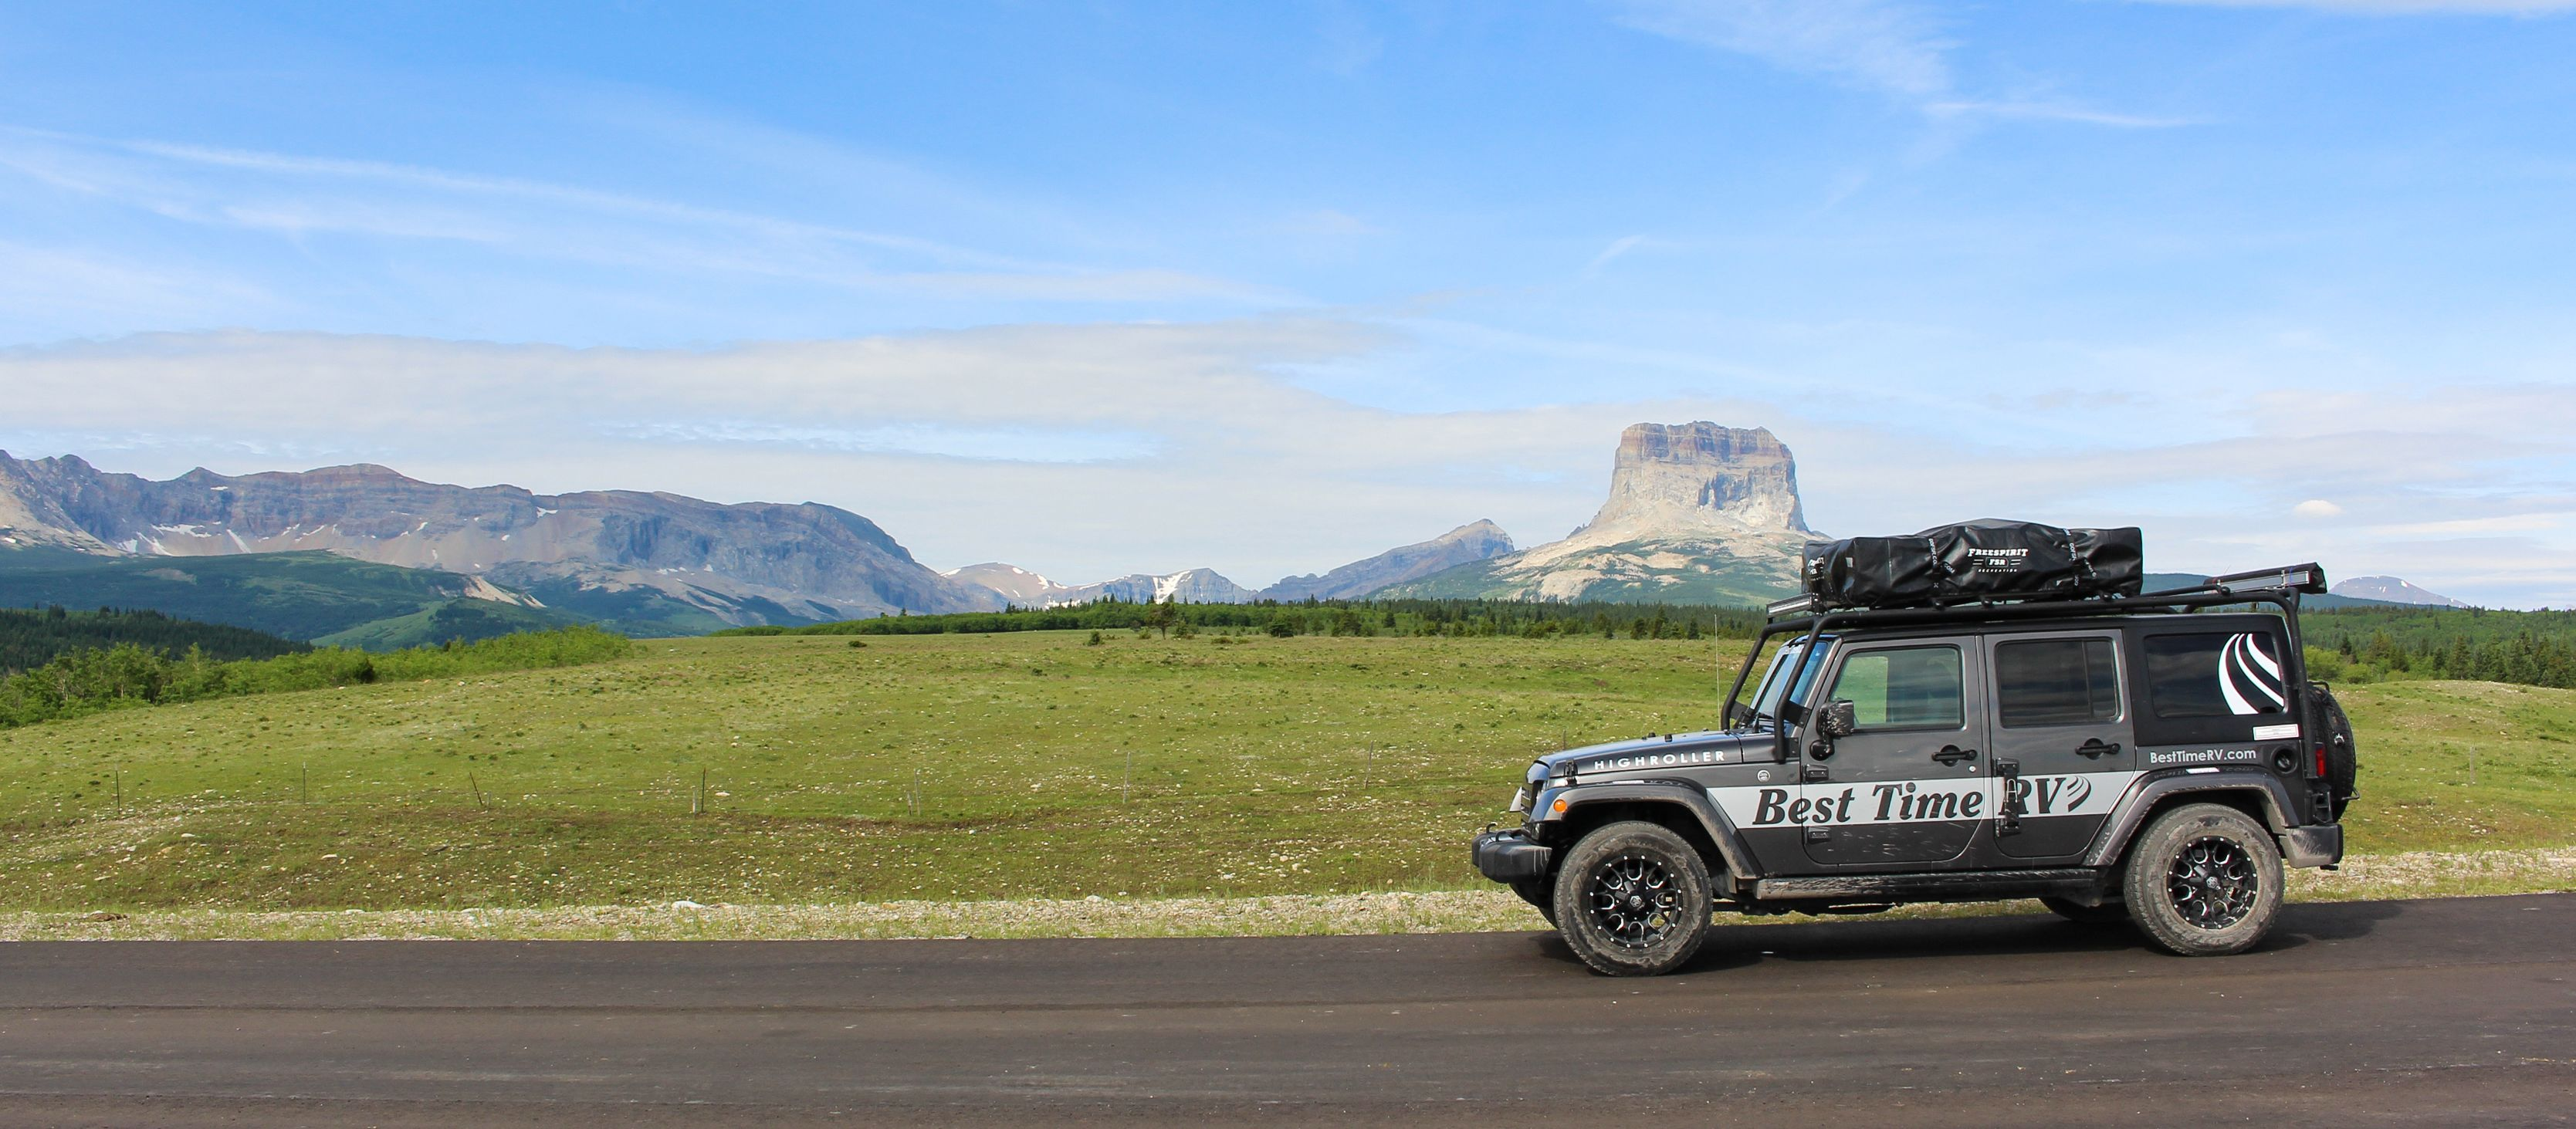 Ein Best Time RV Jeep vor dem Chief Mountain in Montana